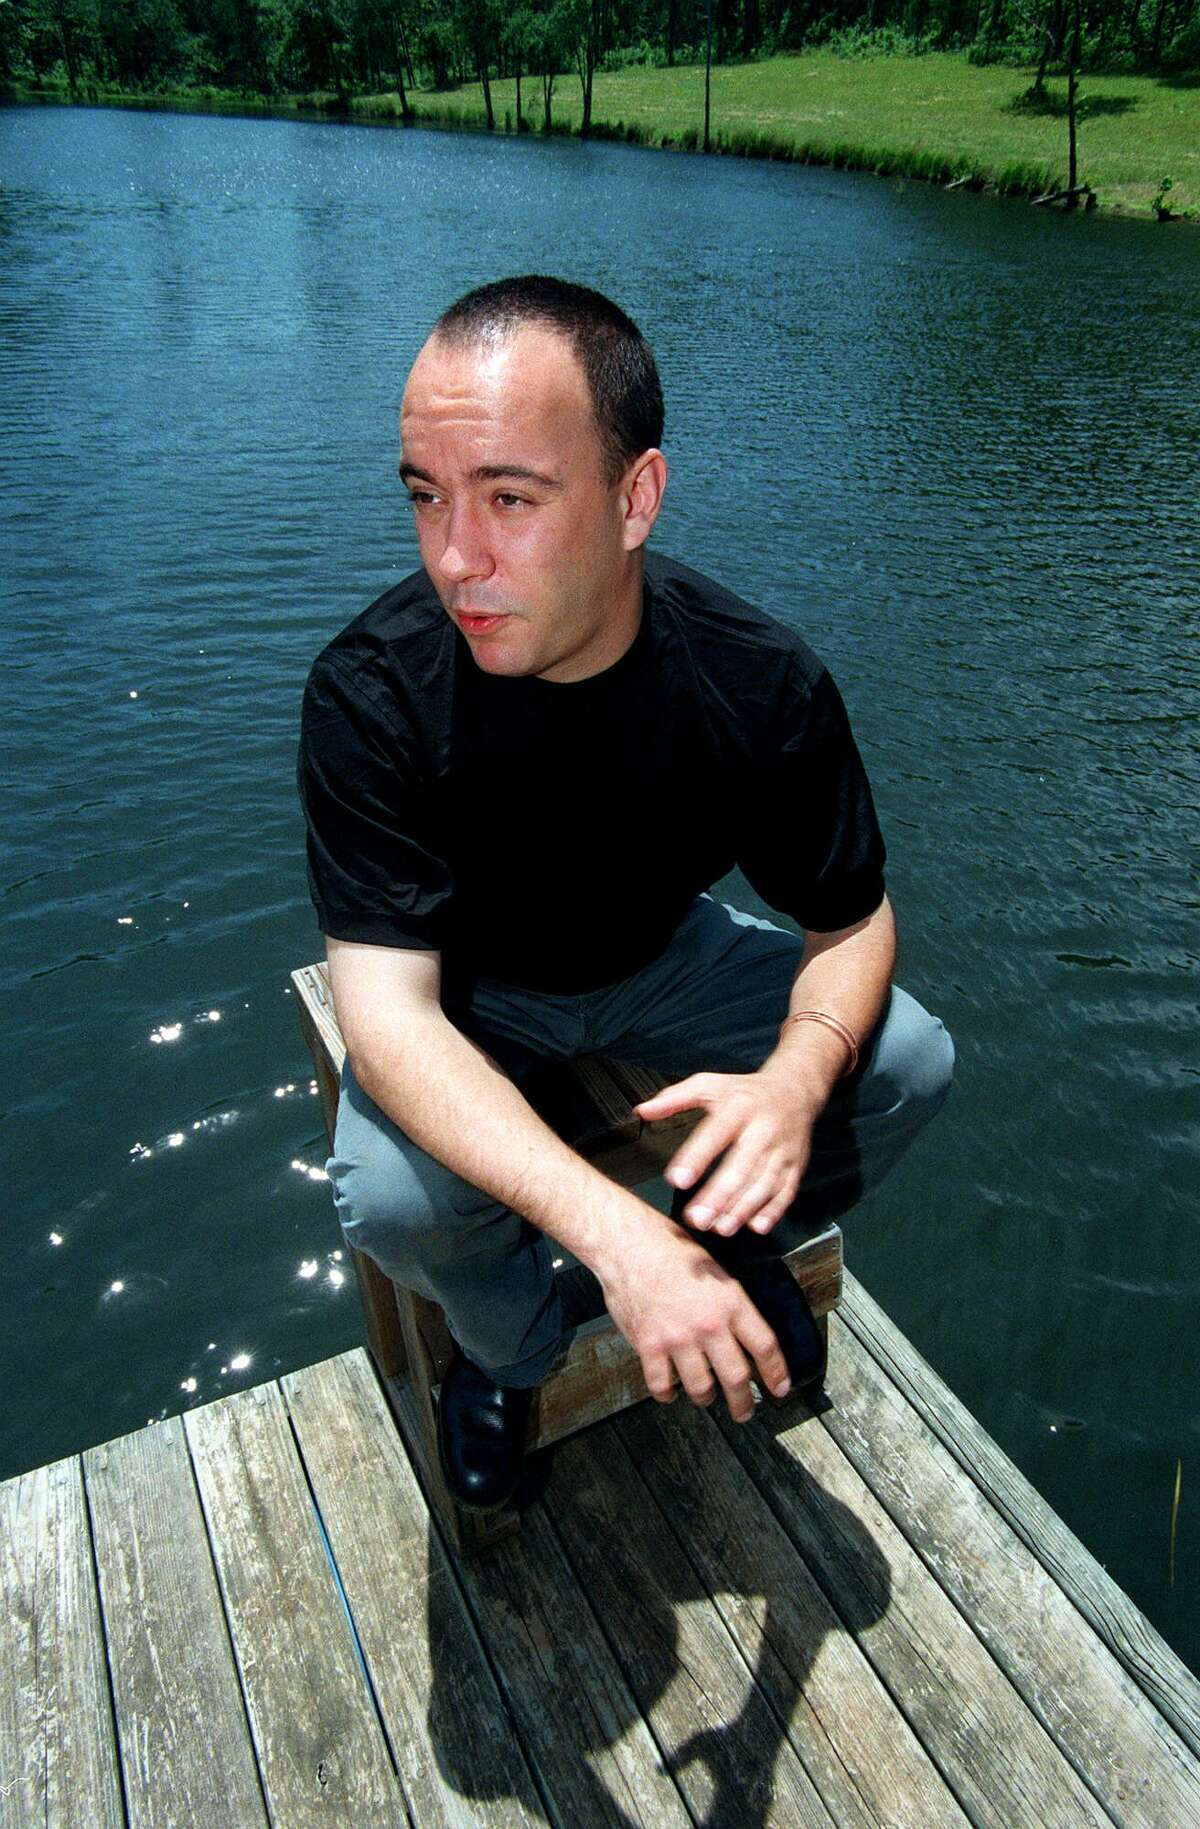 TO GO WITH STORY SLUGGED: DAVE MATTHEWS--Rock musician Dave Matthews gestures during an interview on the dock at his pond outside Charlottesville, Va., June 8, 2000. The Dave Matthews Band he heads is recording a new album and starting its biggest summer stadium tour, 52 dates over seven weeks. (AP Photo/Don Petersen)